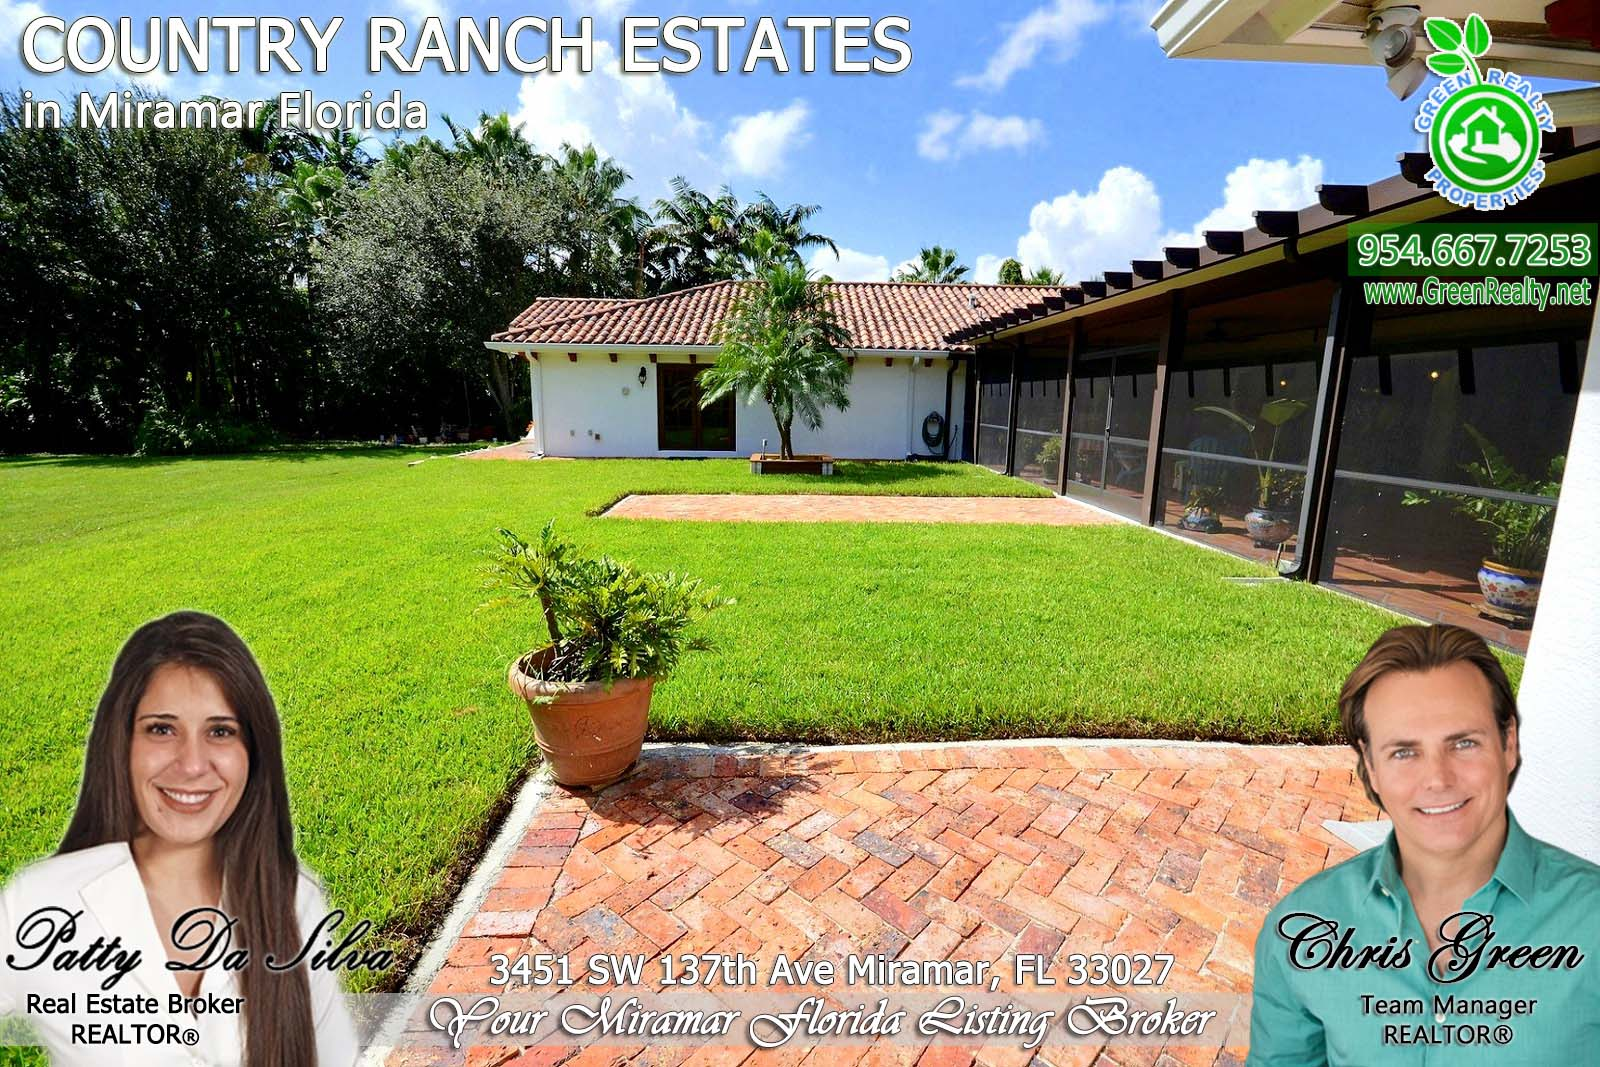 55 Country Ranch Estates